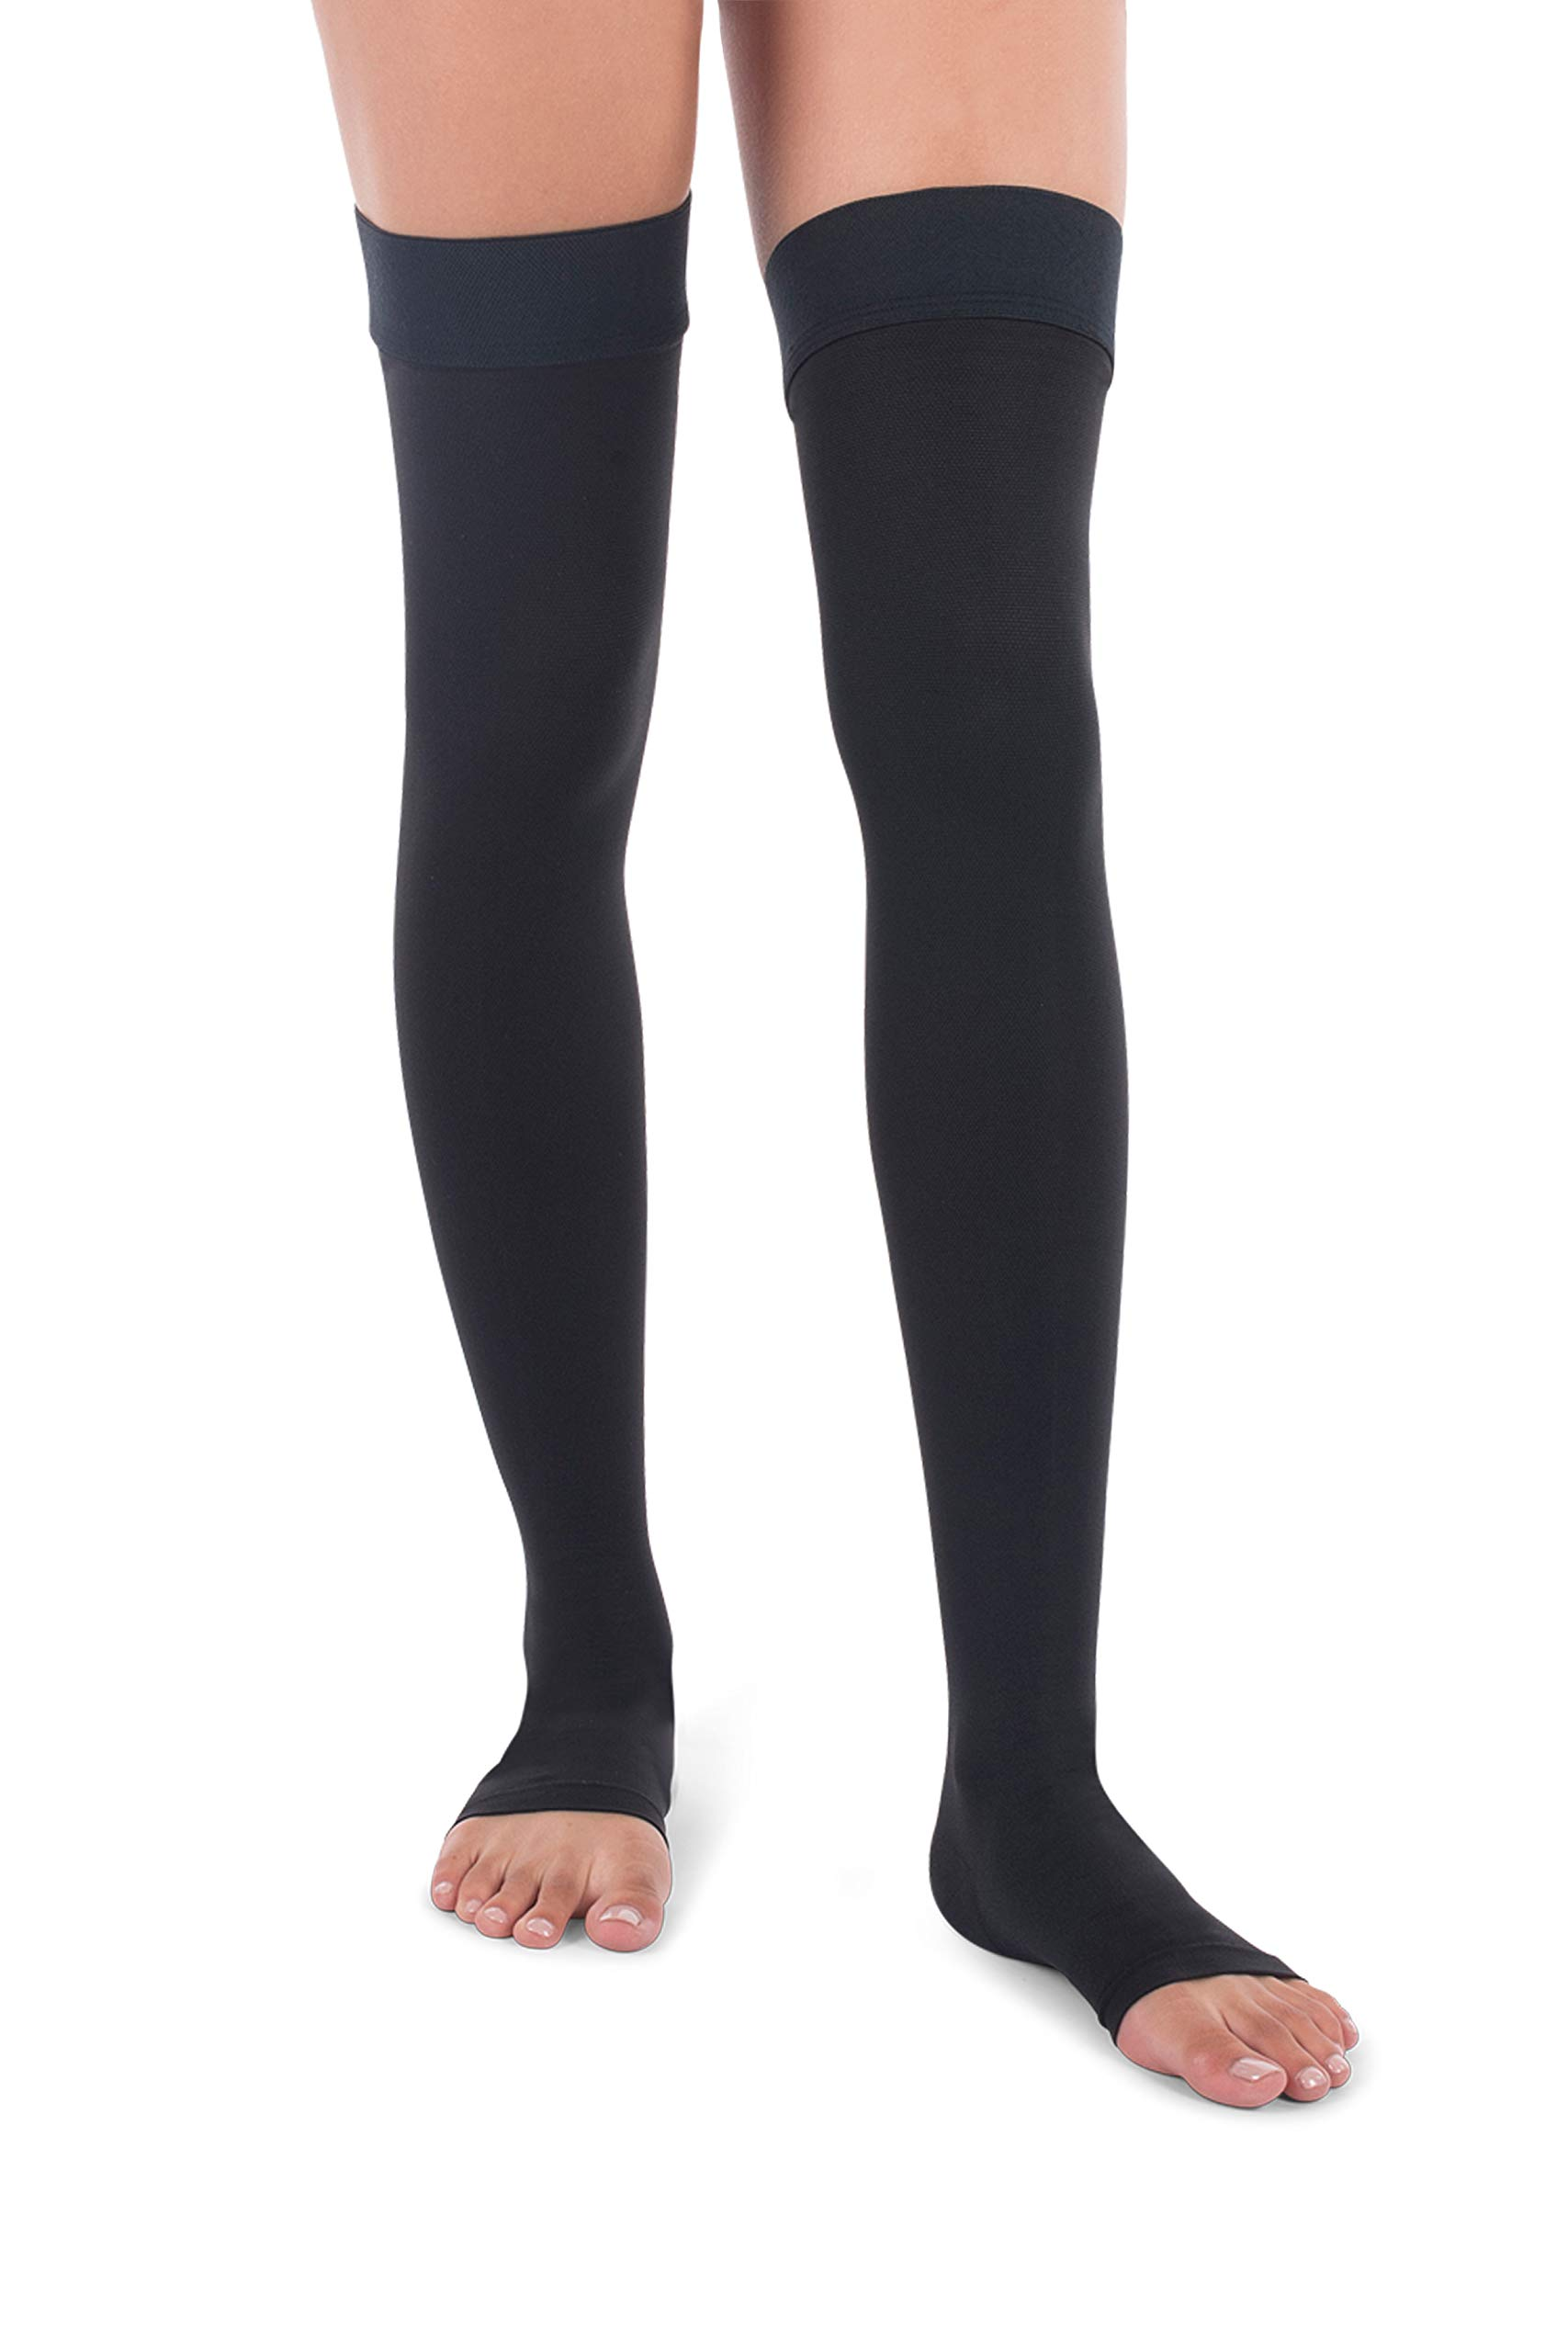 Jomi Compression, Unisex, Thigh High Stockings Collection, 30-40mmHg Surgical Weight Open Toe 341 (Medium, Black) by JOMI COMPRESSION